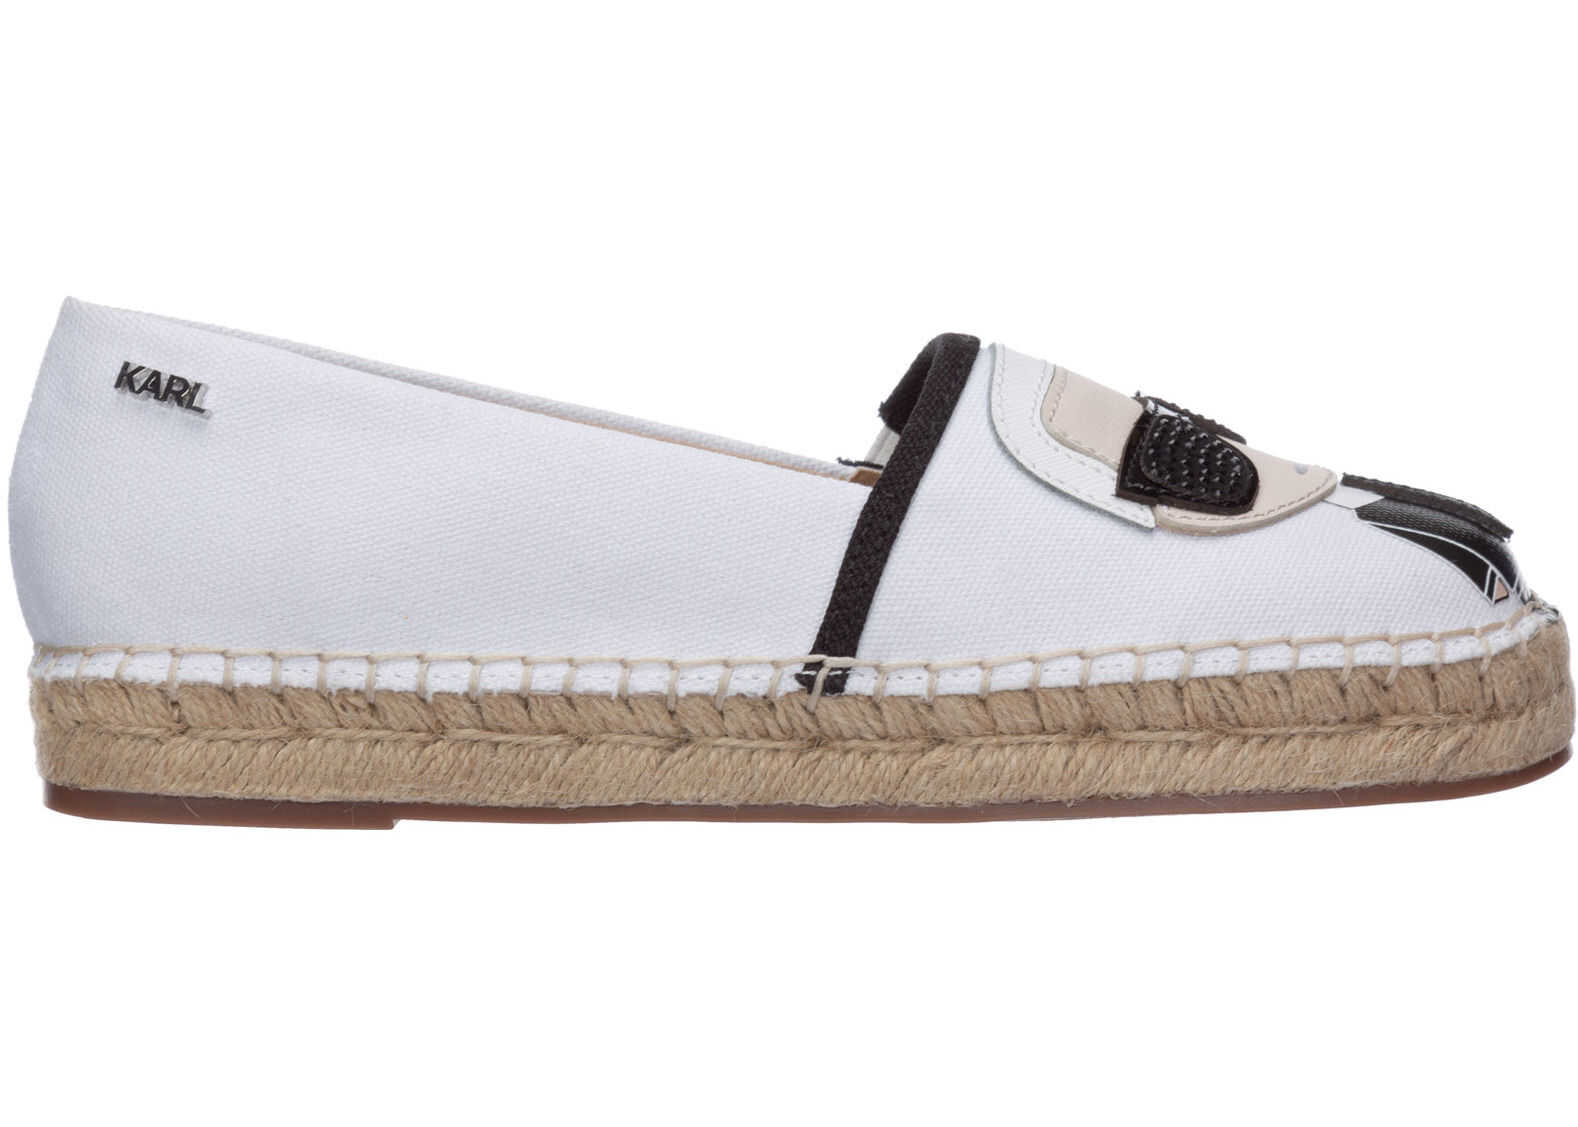 Karl Lagerfeld Cotton Espadrilles Slip On Shoes K/Ikonik White